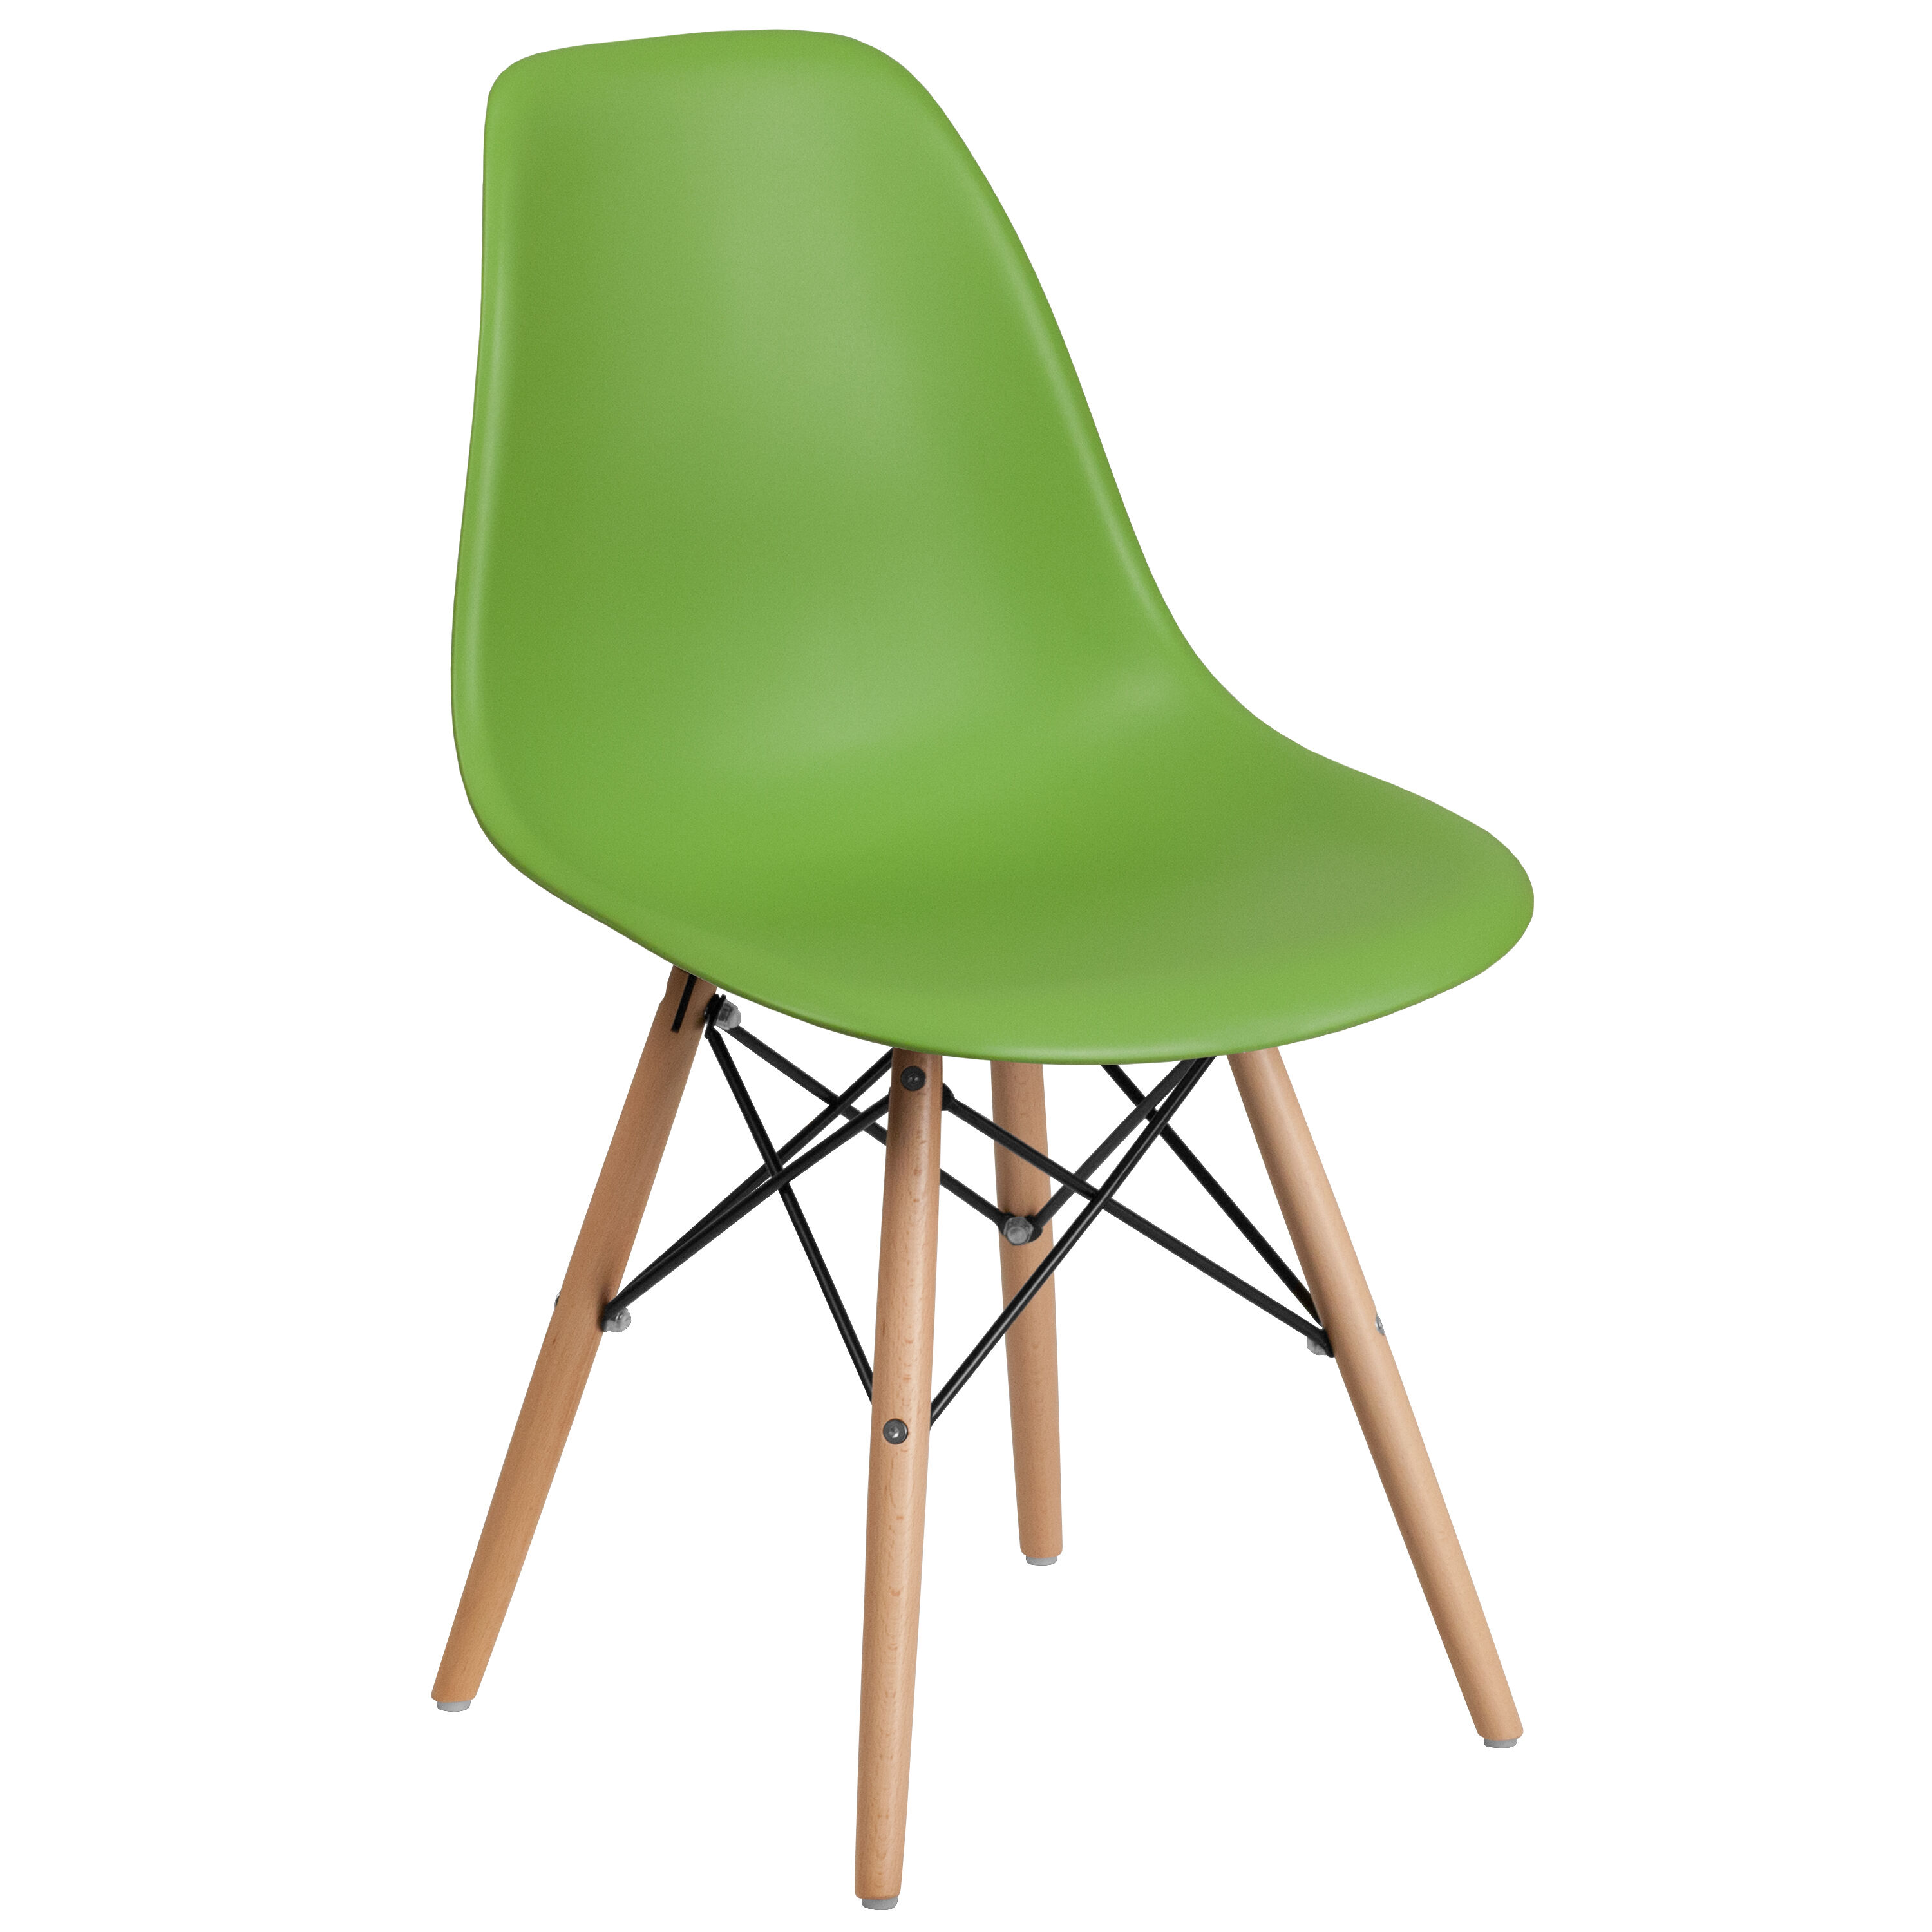 Elon Series Green Plastic Chair with Wood Base  sc 1 st  RestaurantFurniture4Less & RestaurantFurniture4Less: Plastic And Resin Chairs